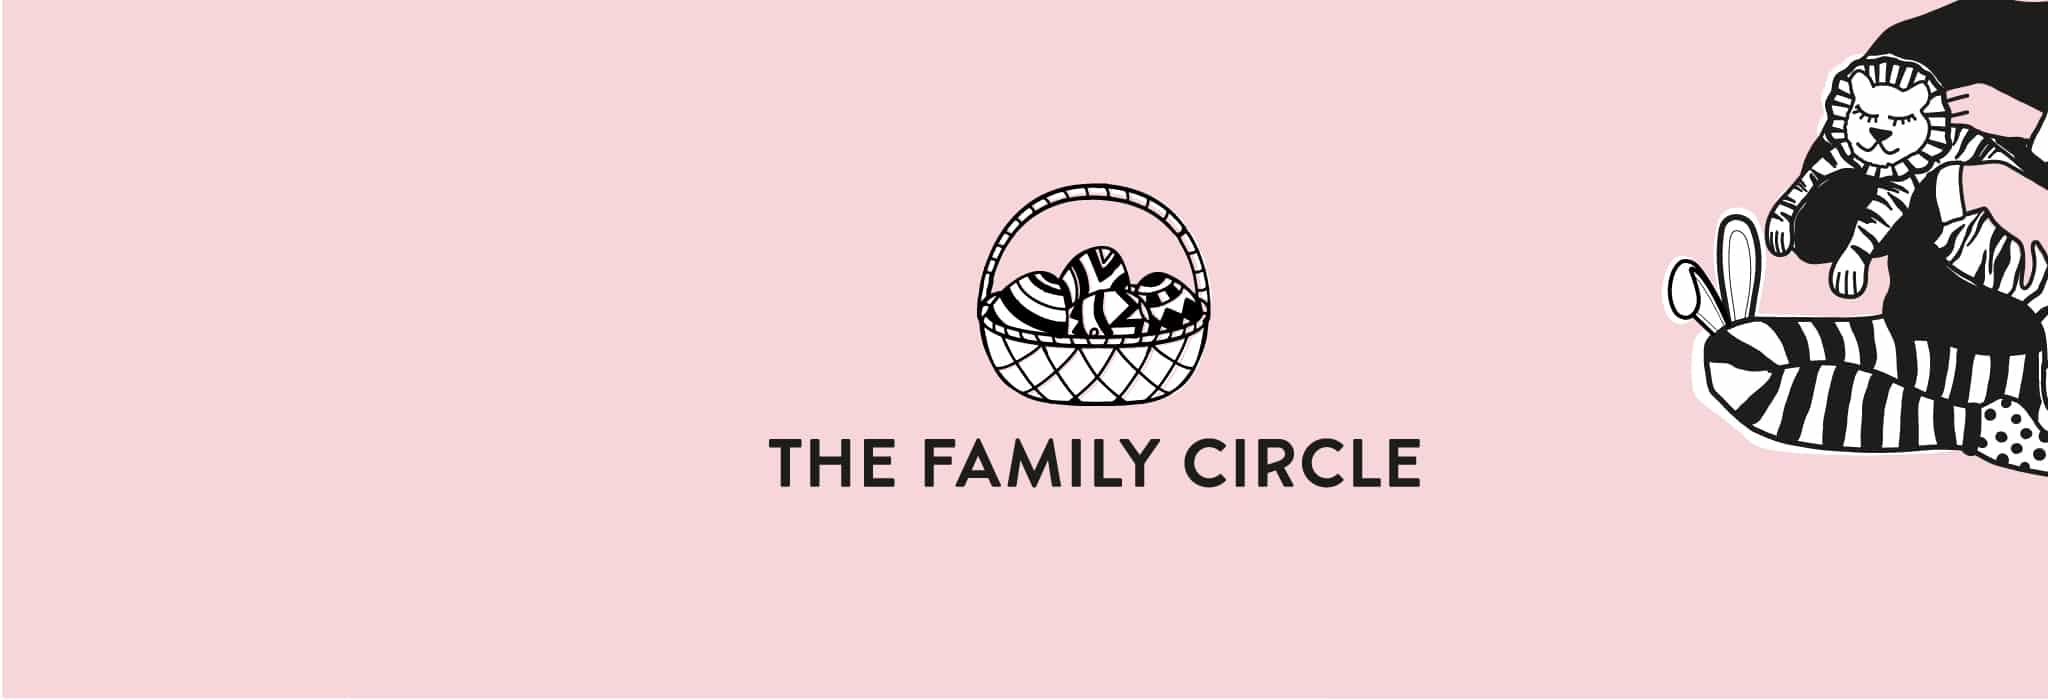 The Family Circle